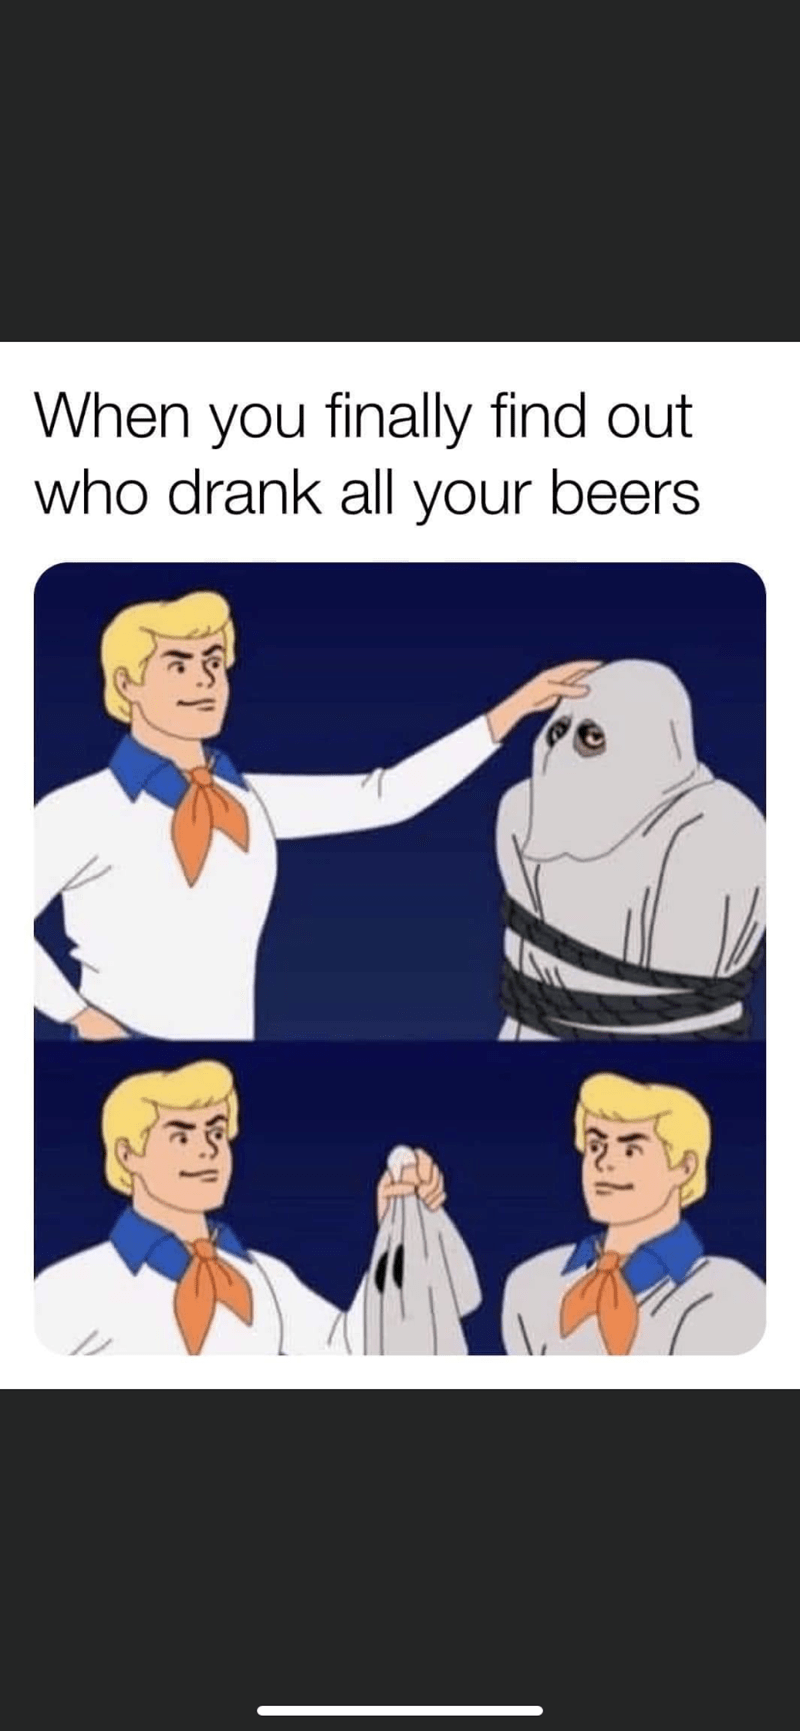 Cartoon - When you finally find out who drank all your beers